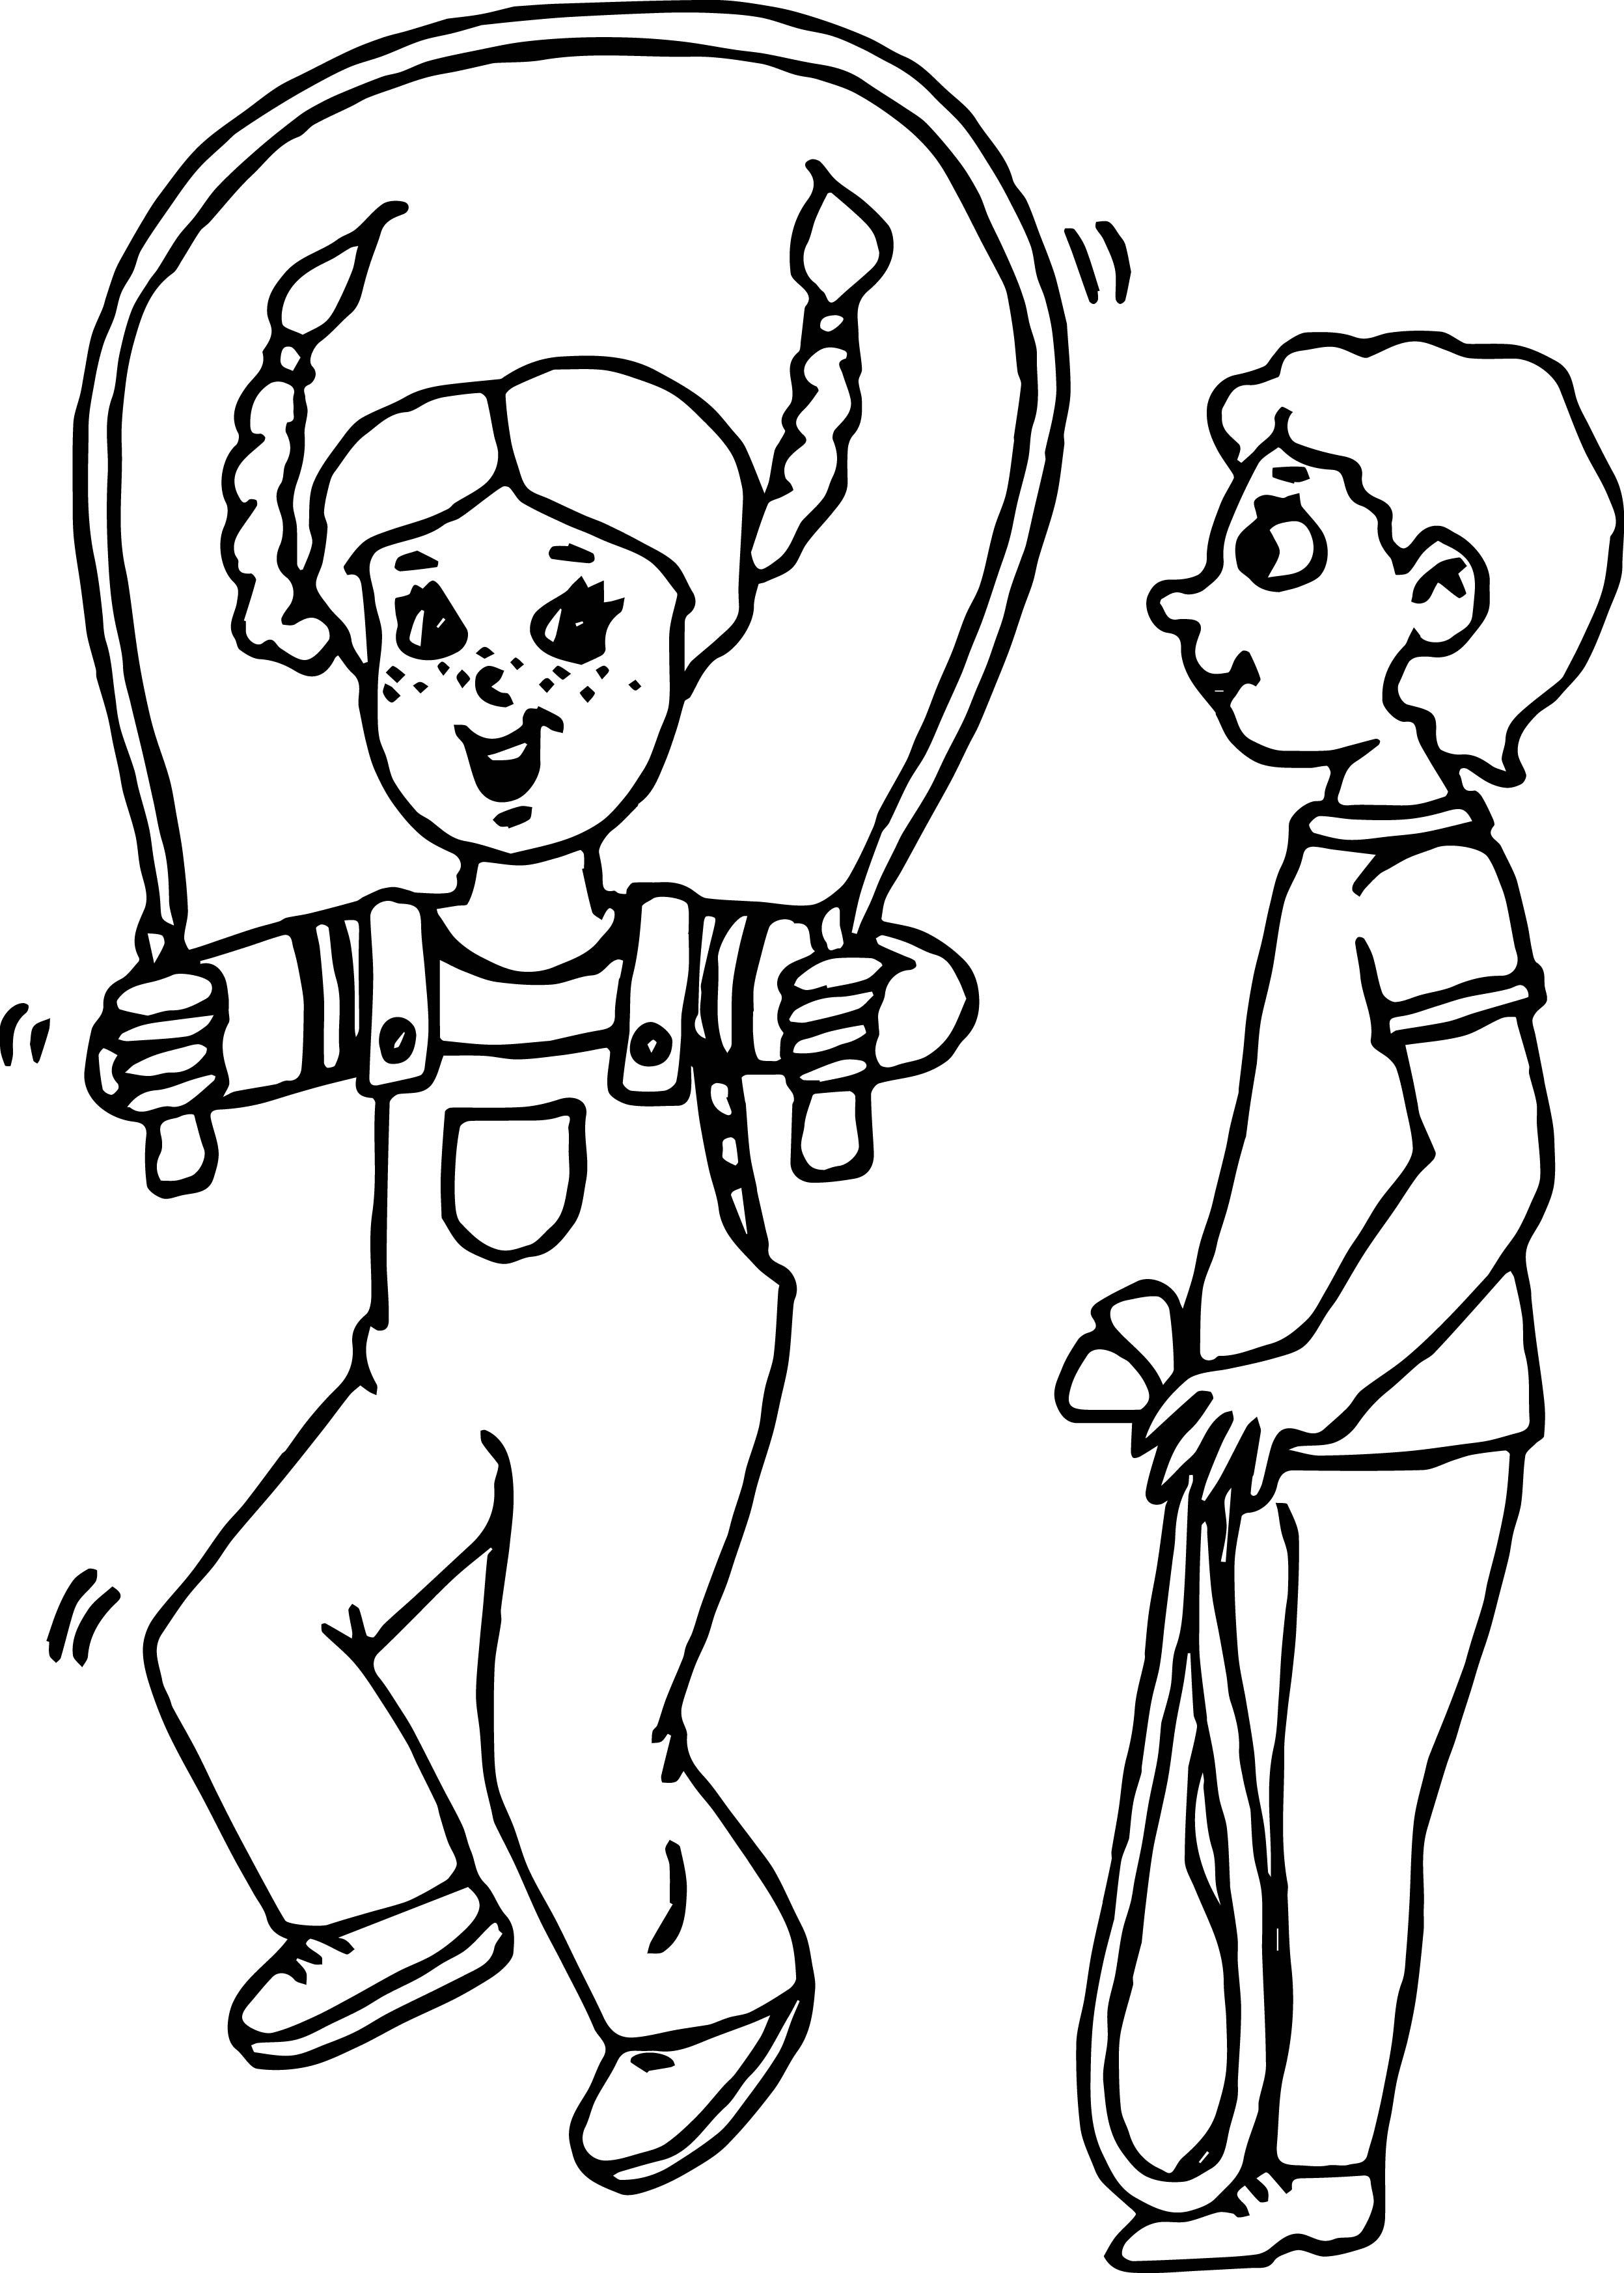 Kids Jumping Rope Kids Coloring Page